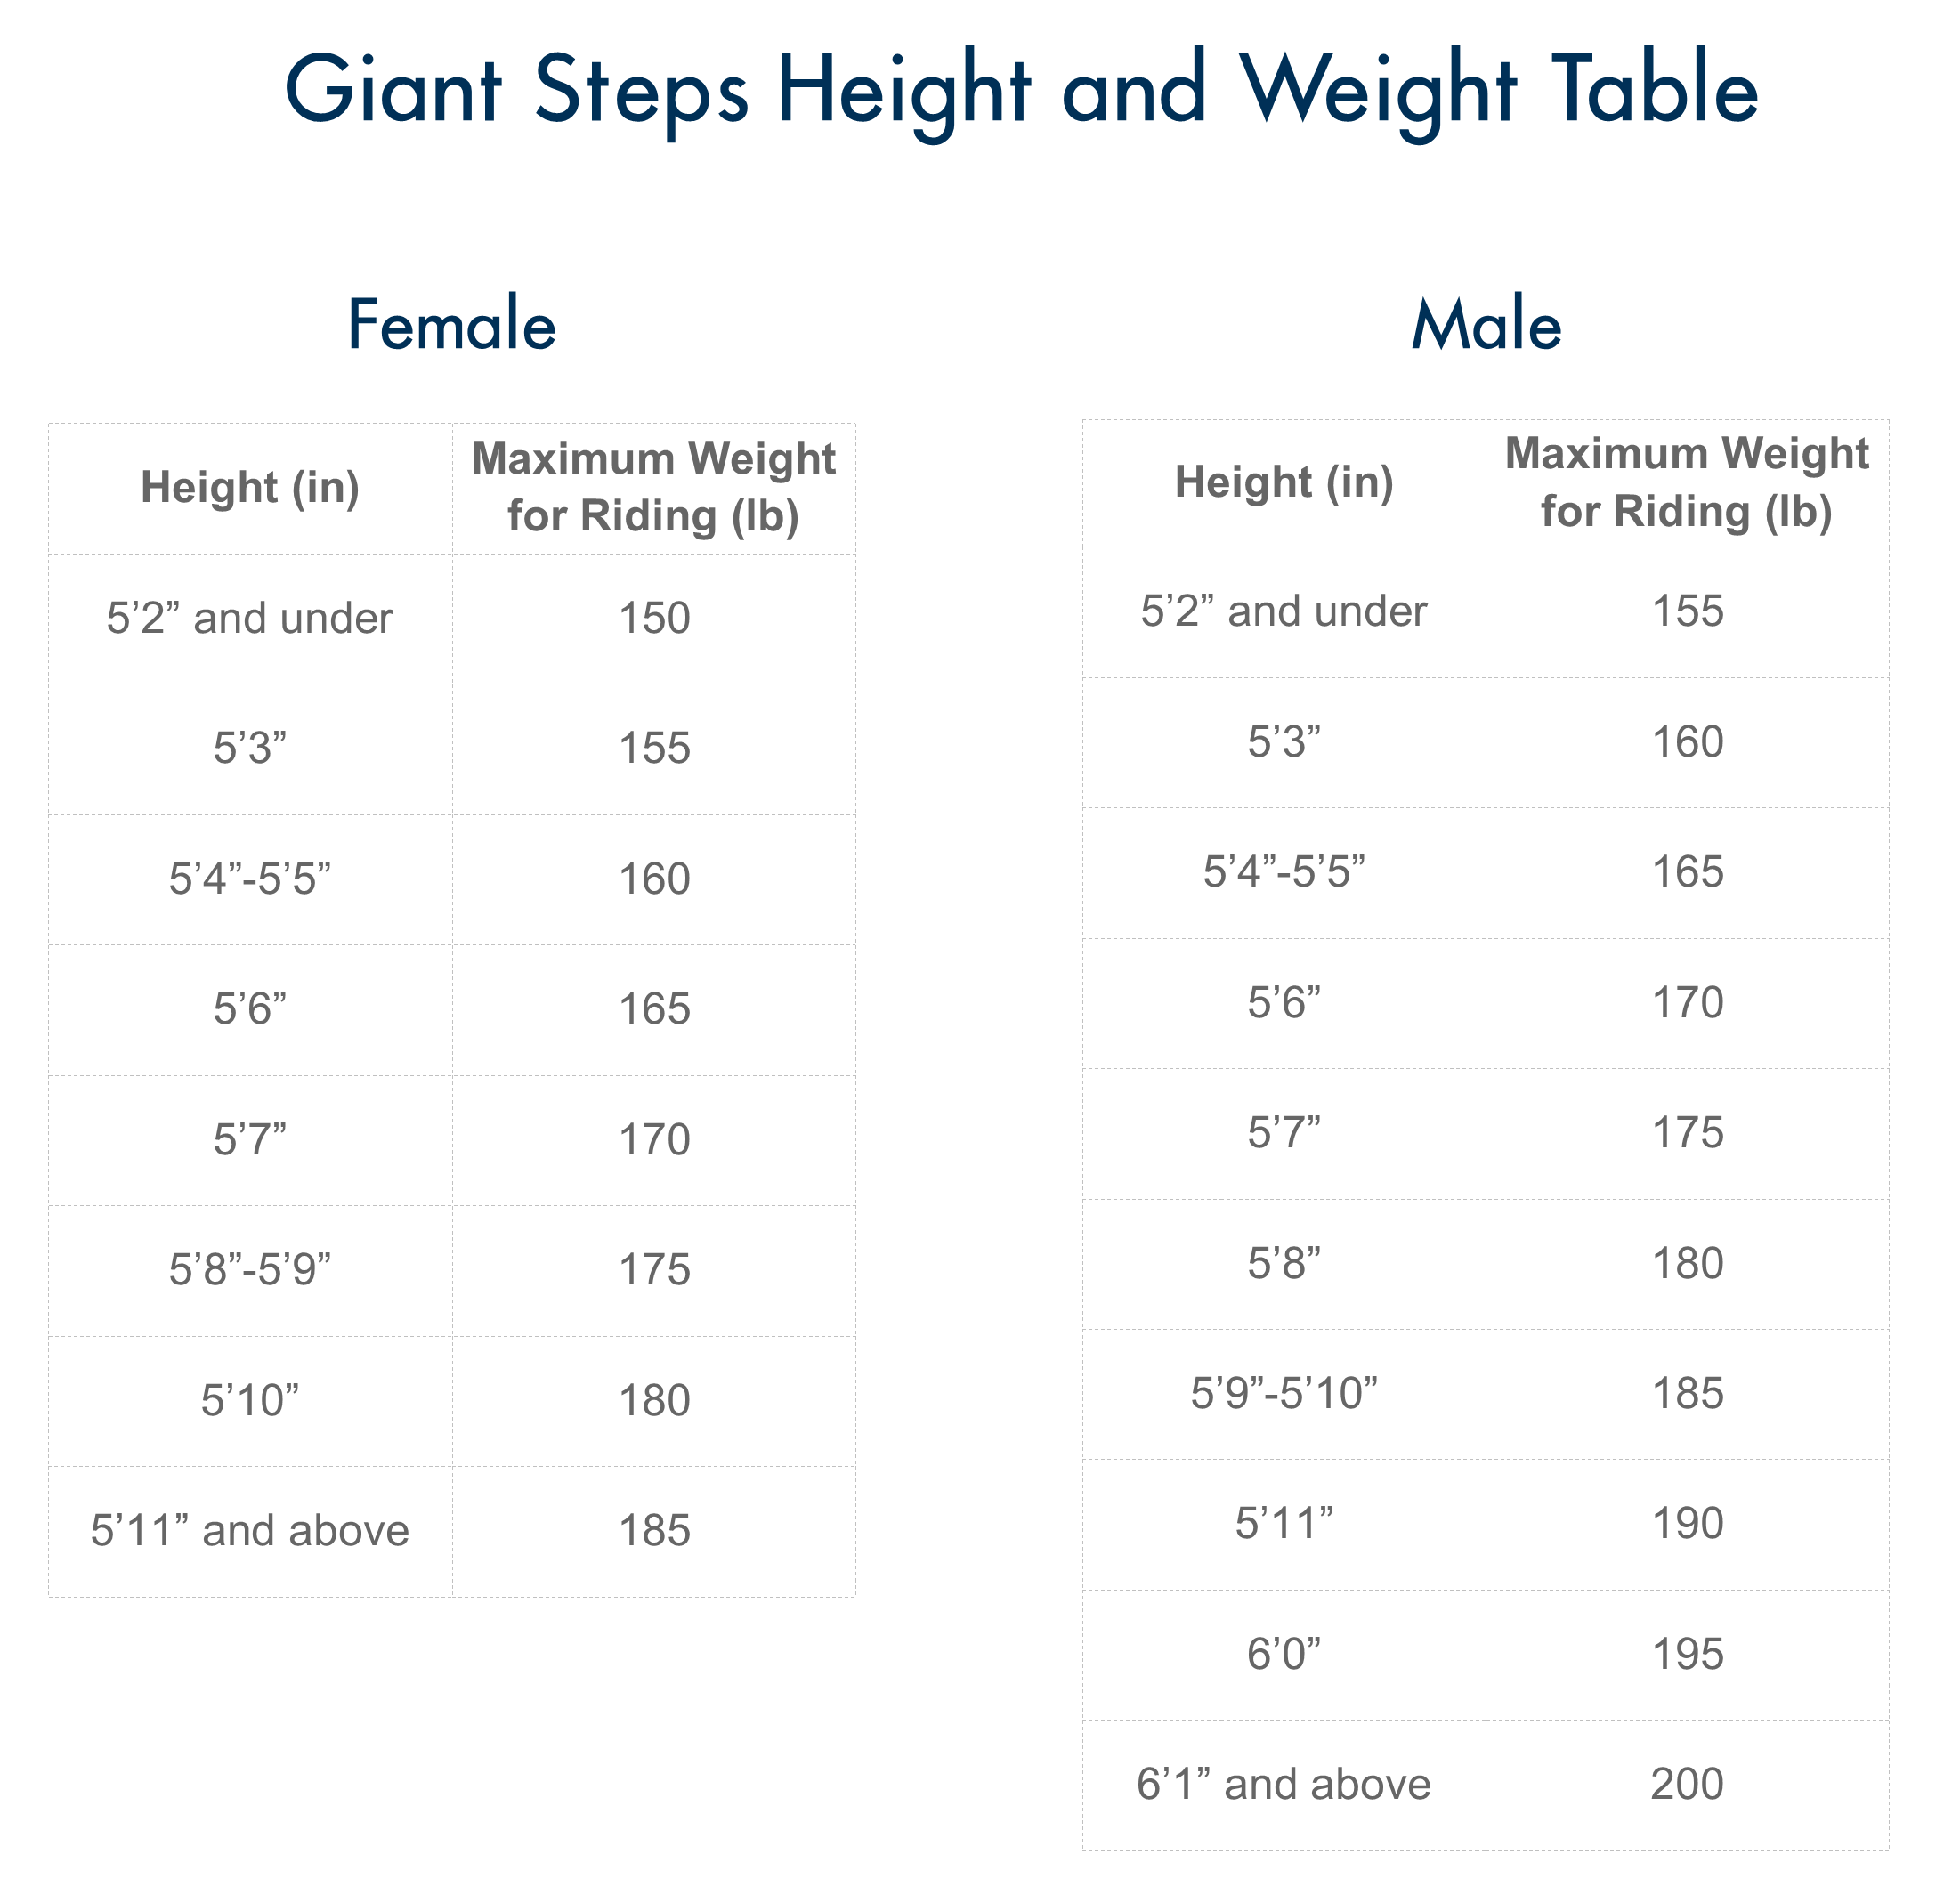 Height and Weight Table